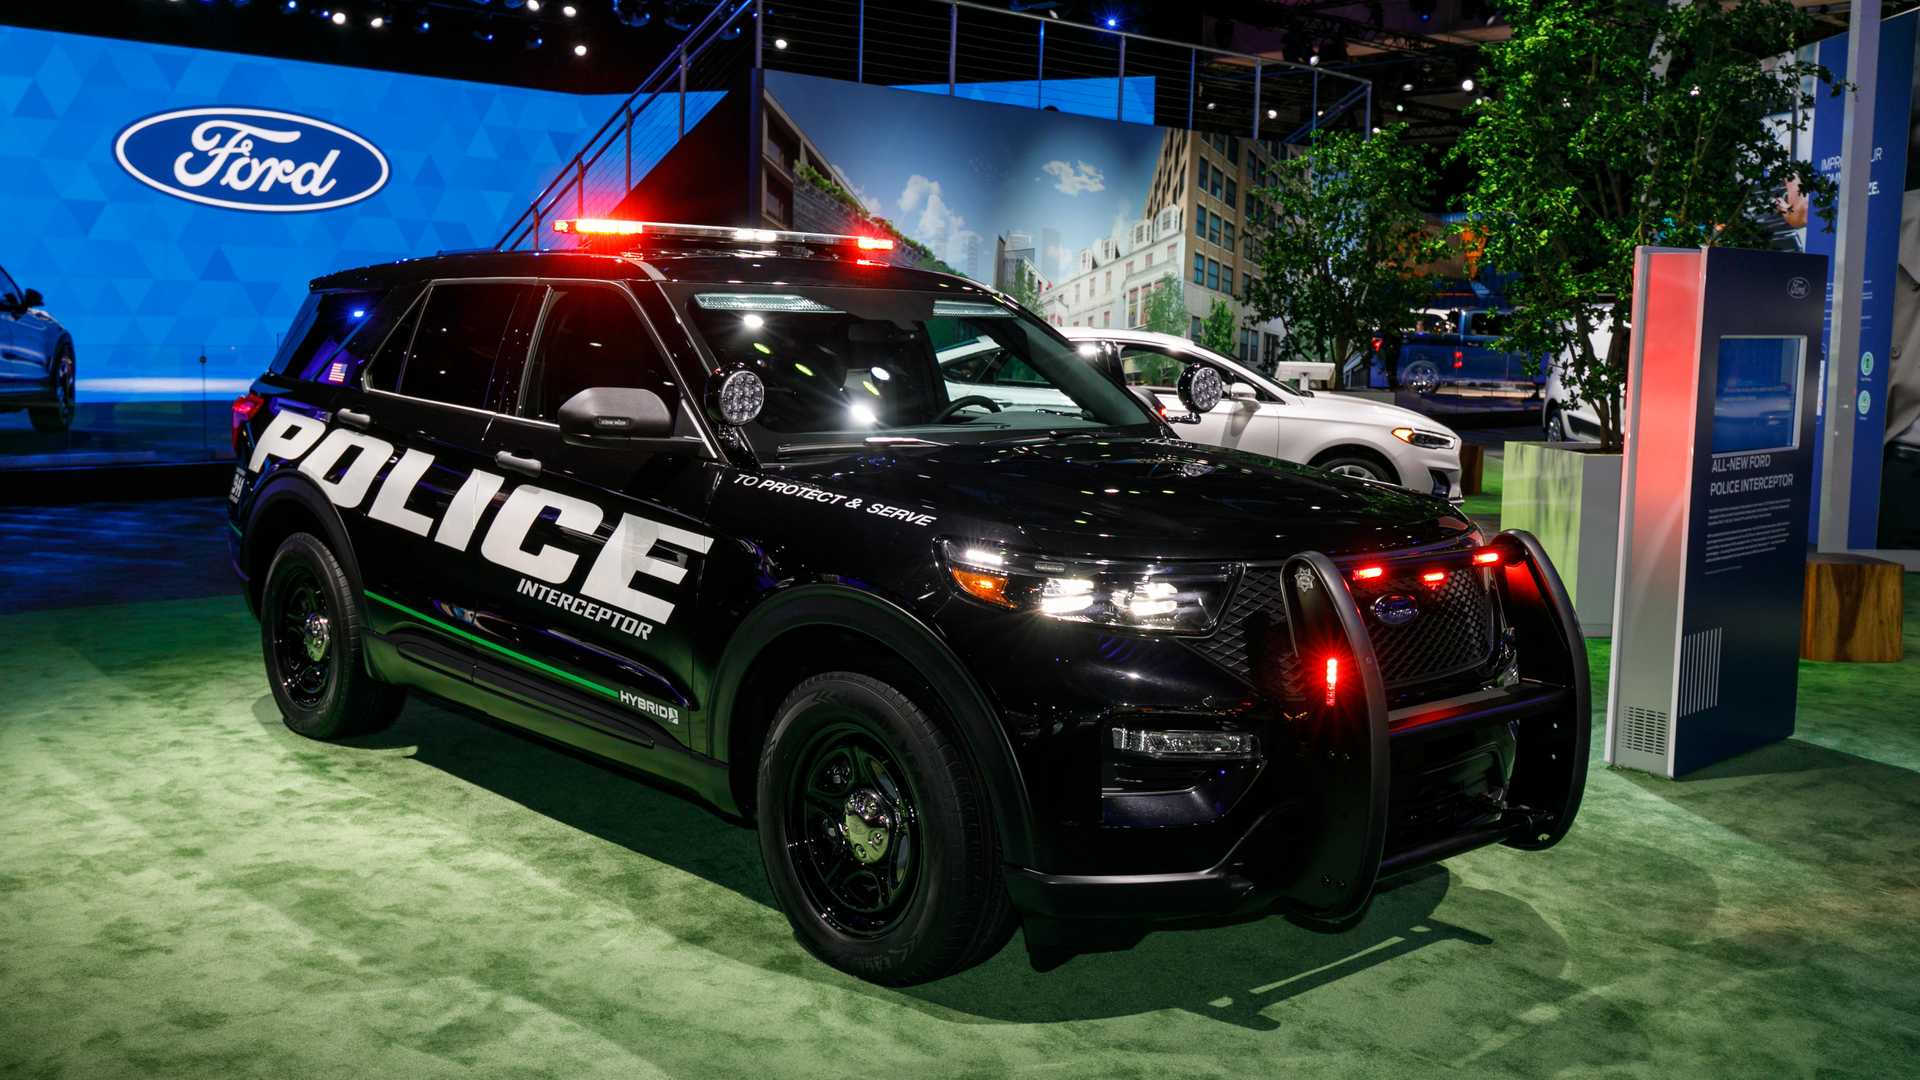 69 Great Ford Interceptor 2020 Picture for Ford Interceptor 2020